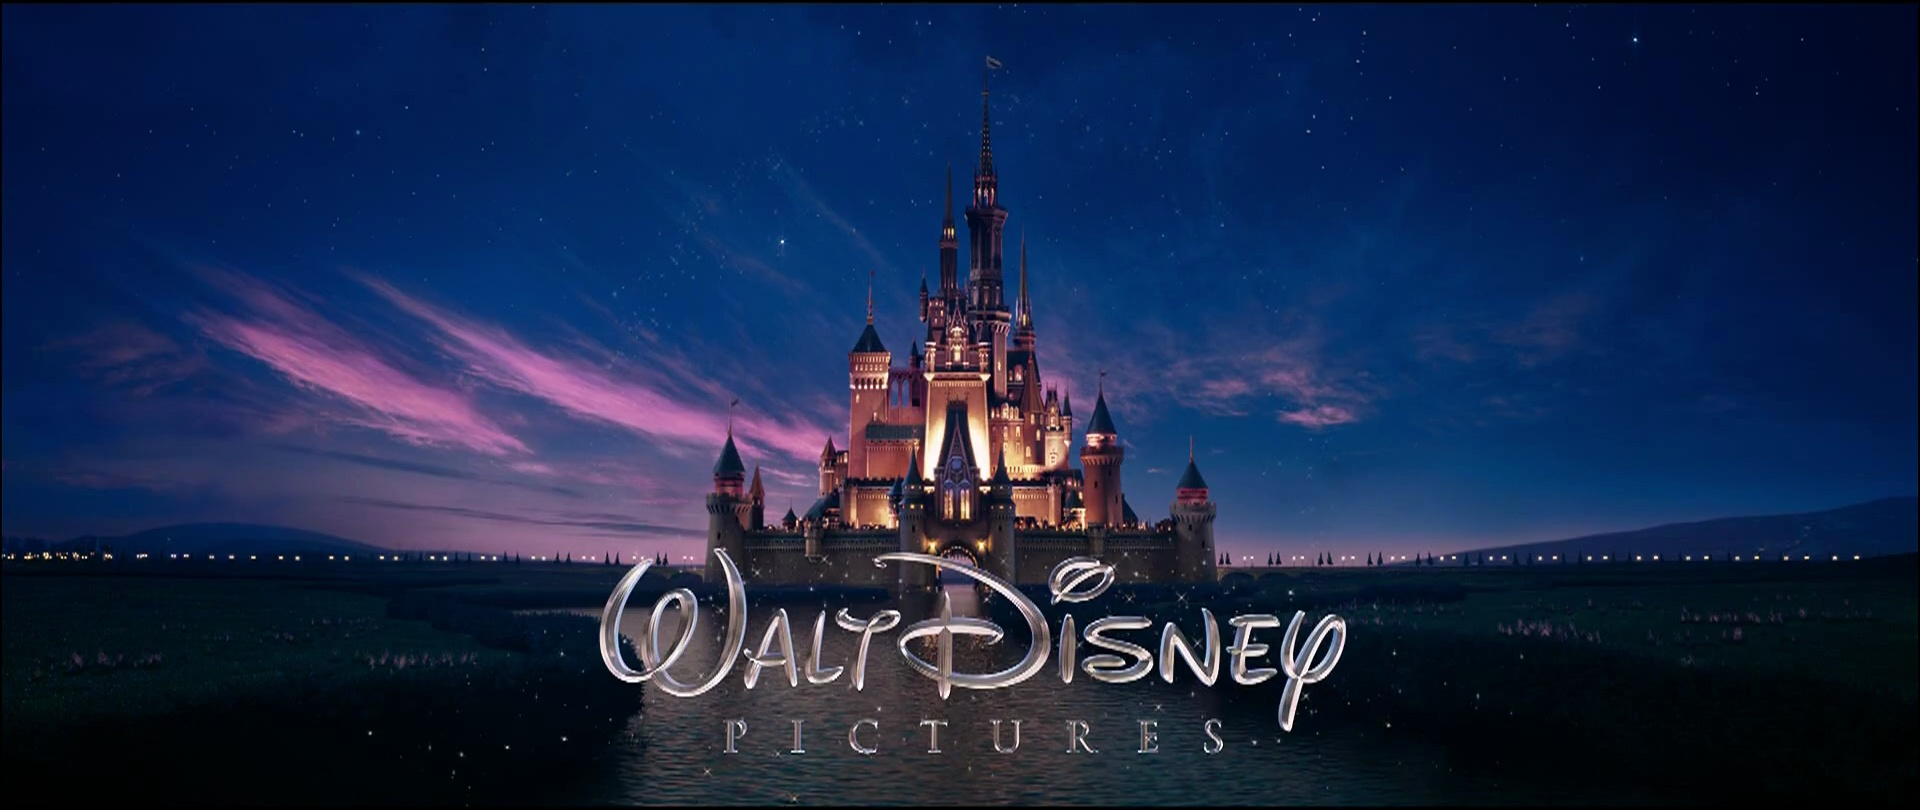 Walt Disney Pictures (2009).jpg